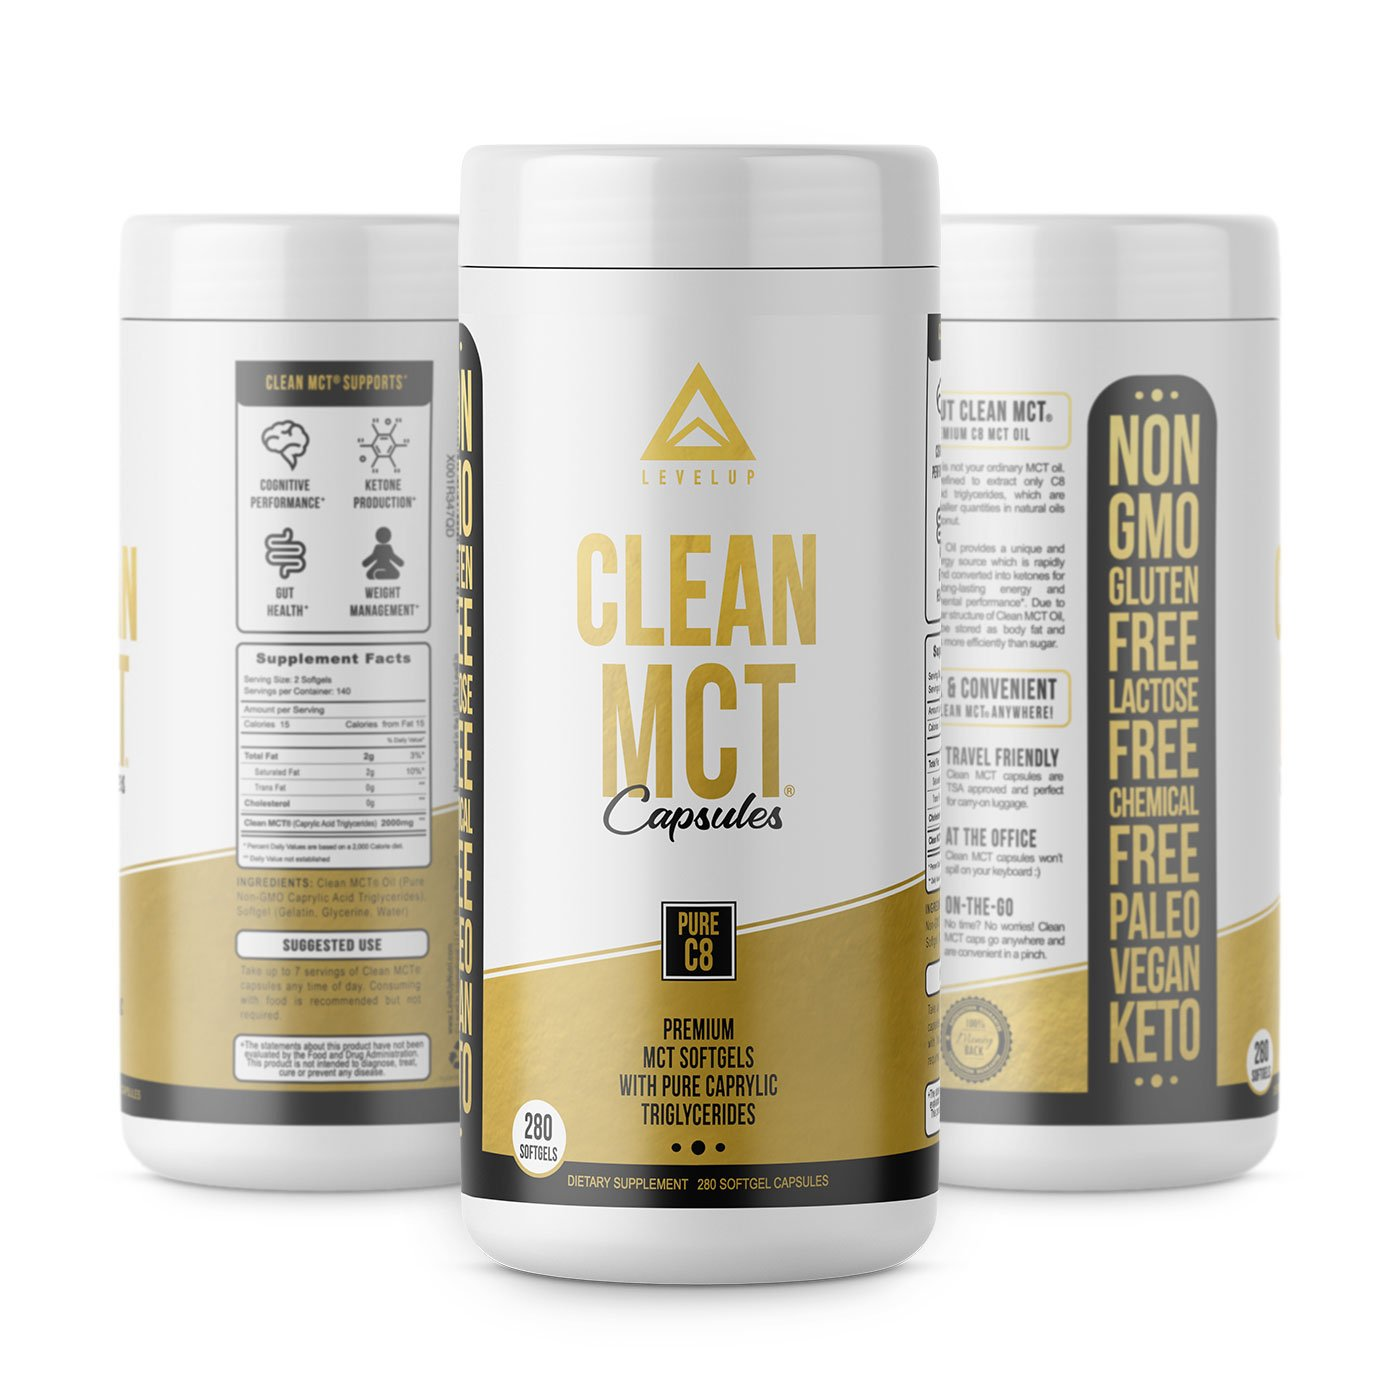 Clean MCT Capsules - Pure C8 MCT Oil Softgels - Highly Ketogenic Medium Chain Triglycerides - Instantly Converts into Ketones - Supports Ketosis - Cognitive Function - 1000mg Each by LevelUp (Image #5)